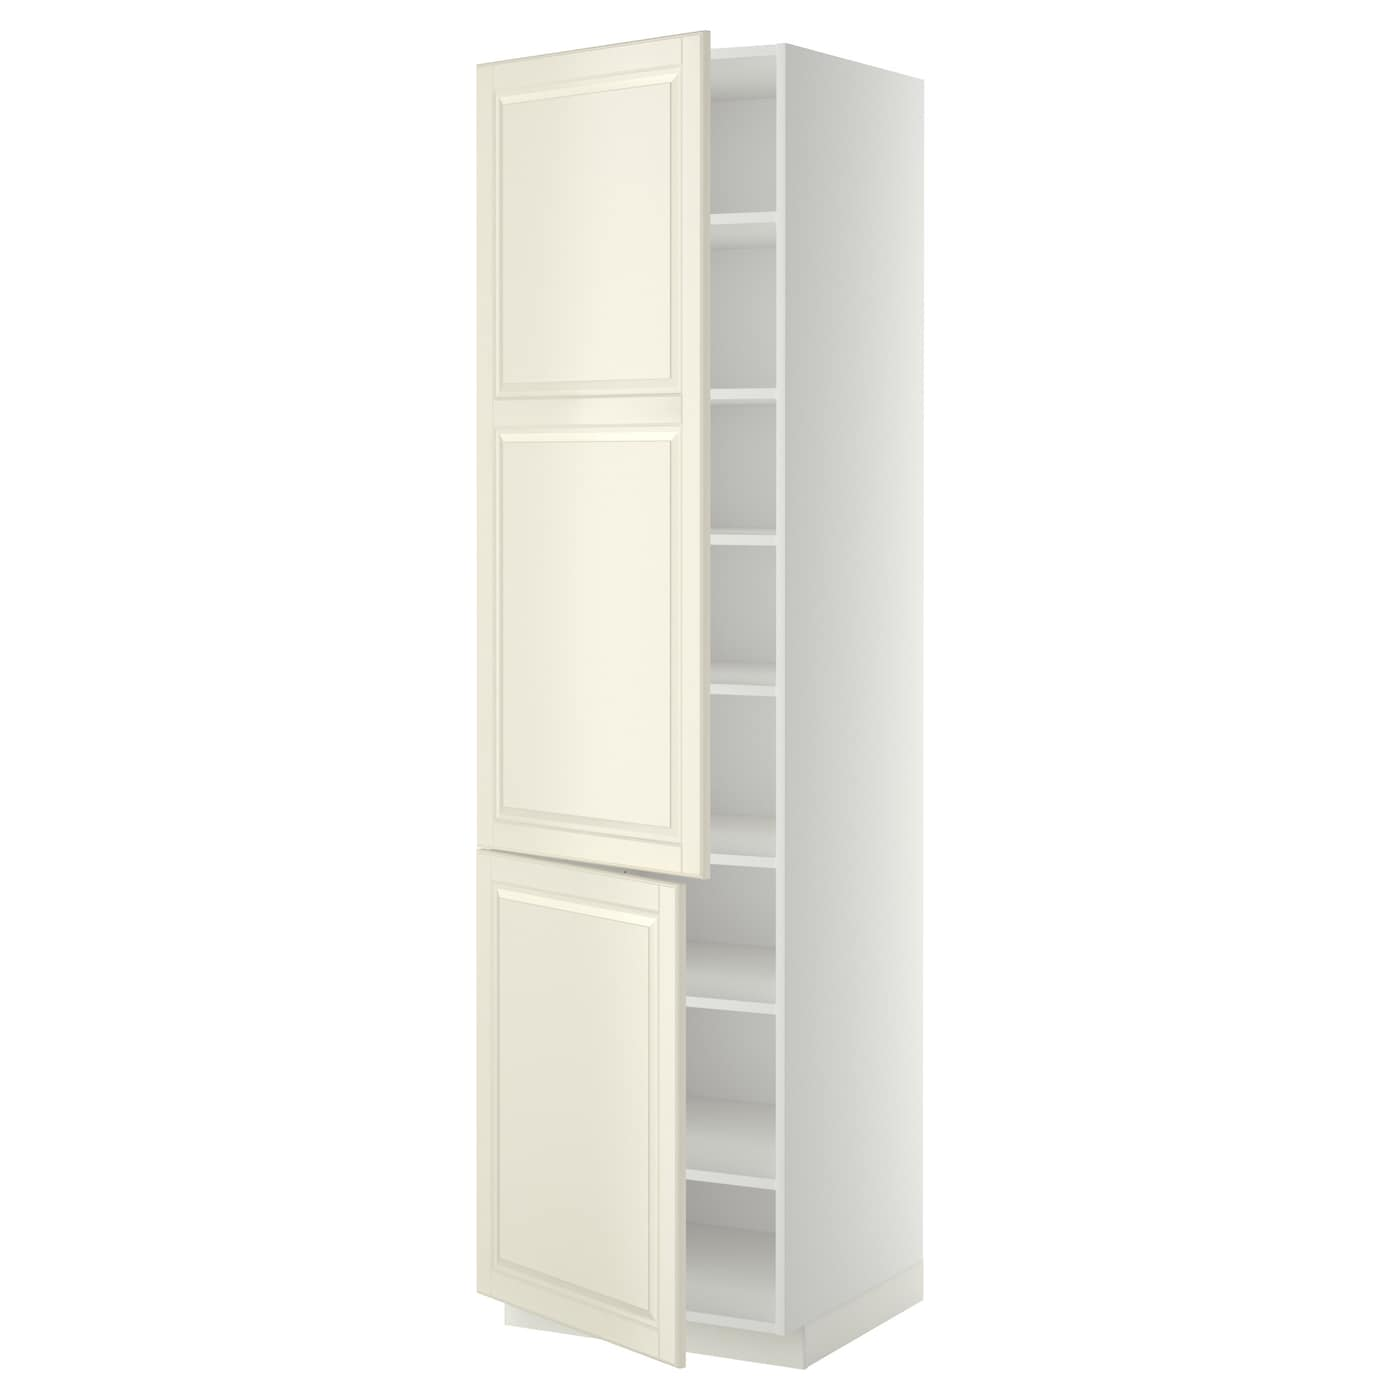 High Cabinet With Shelves 2 Doors Metod White Bodbyn Off White